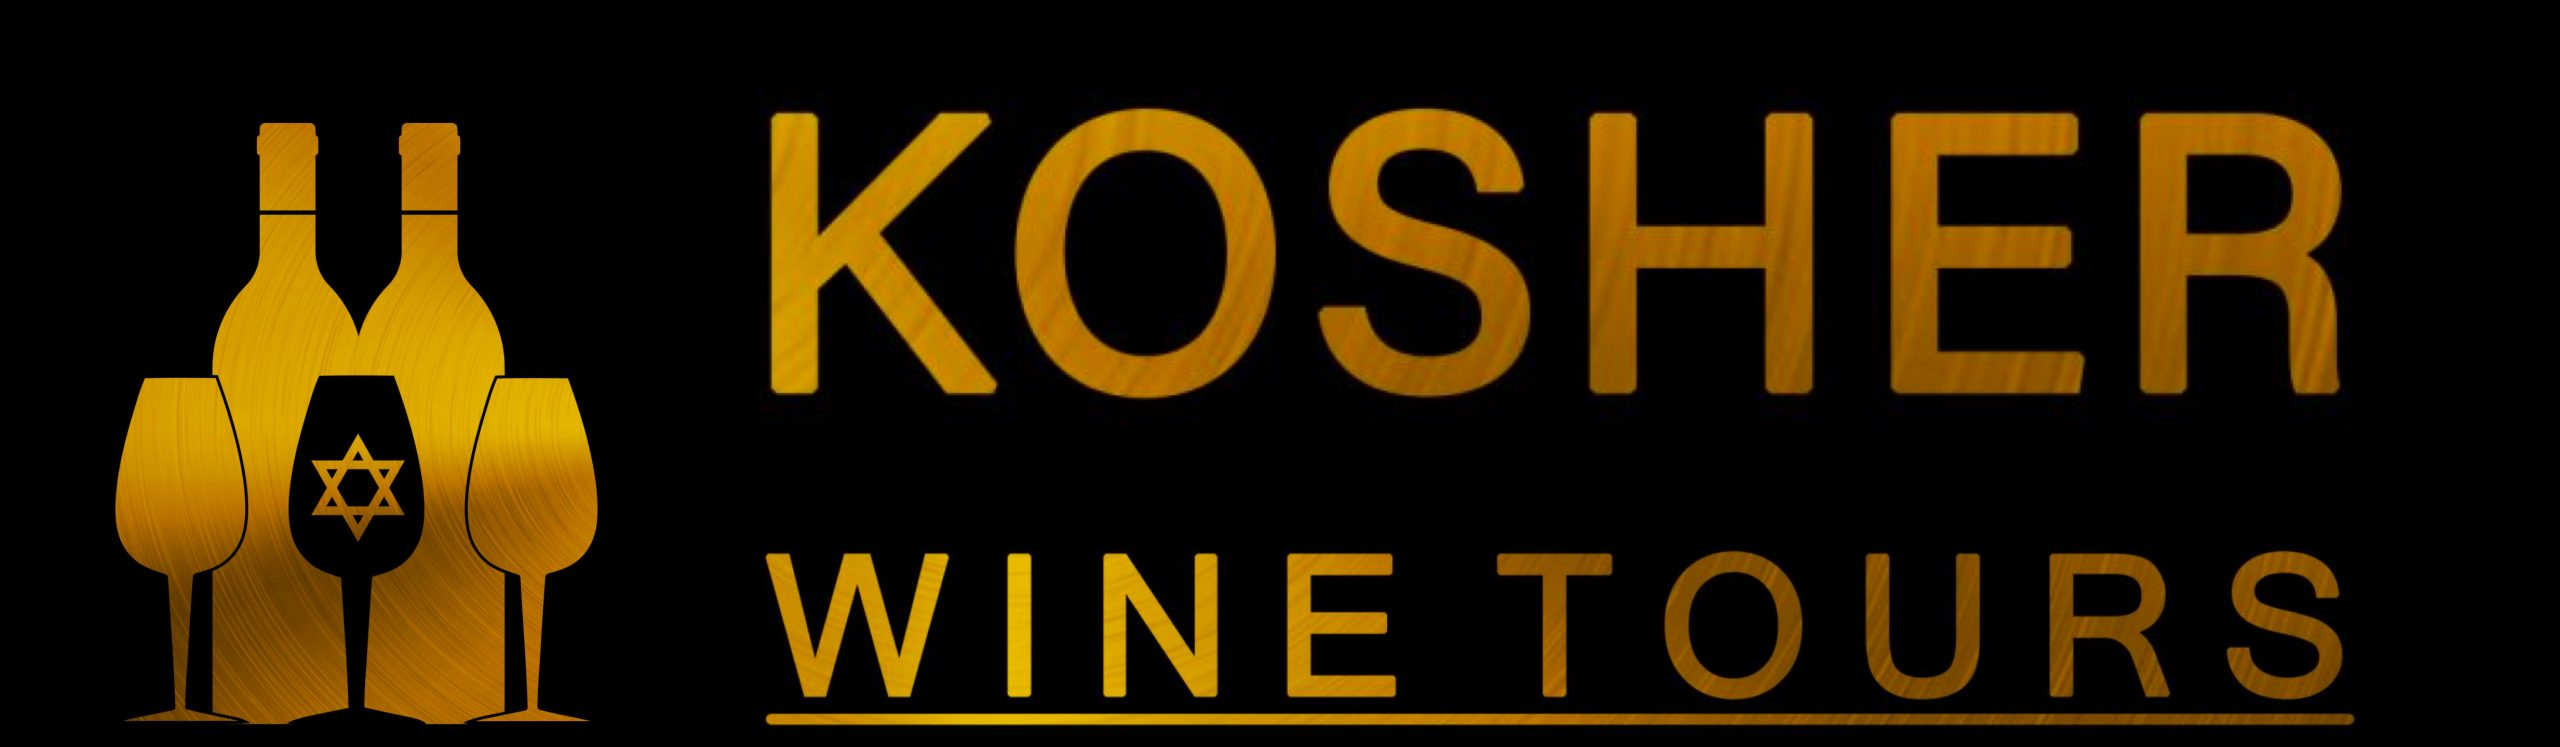 Kosher Wine Tours